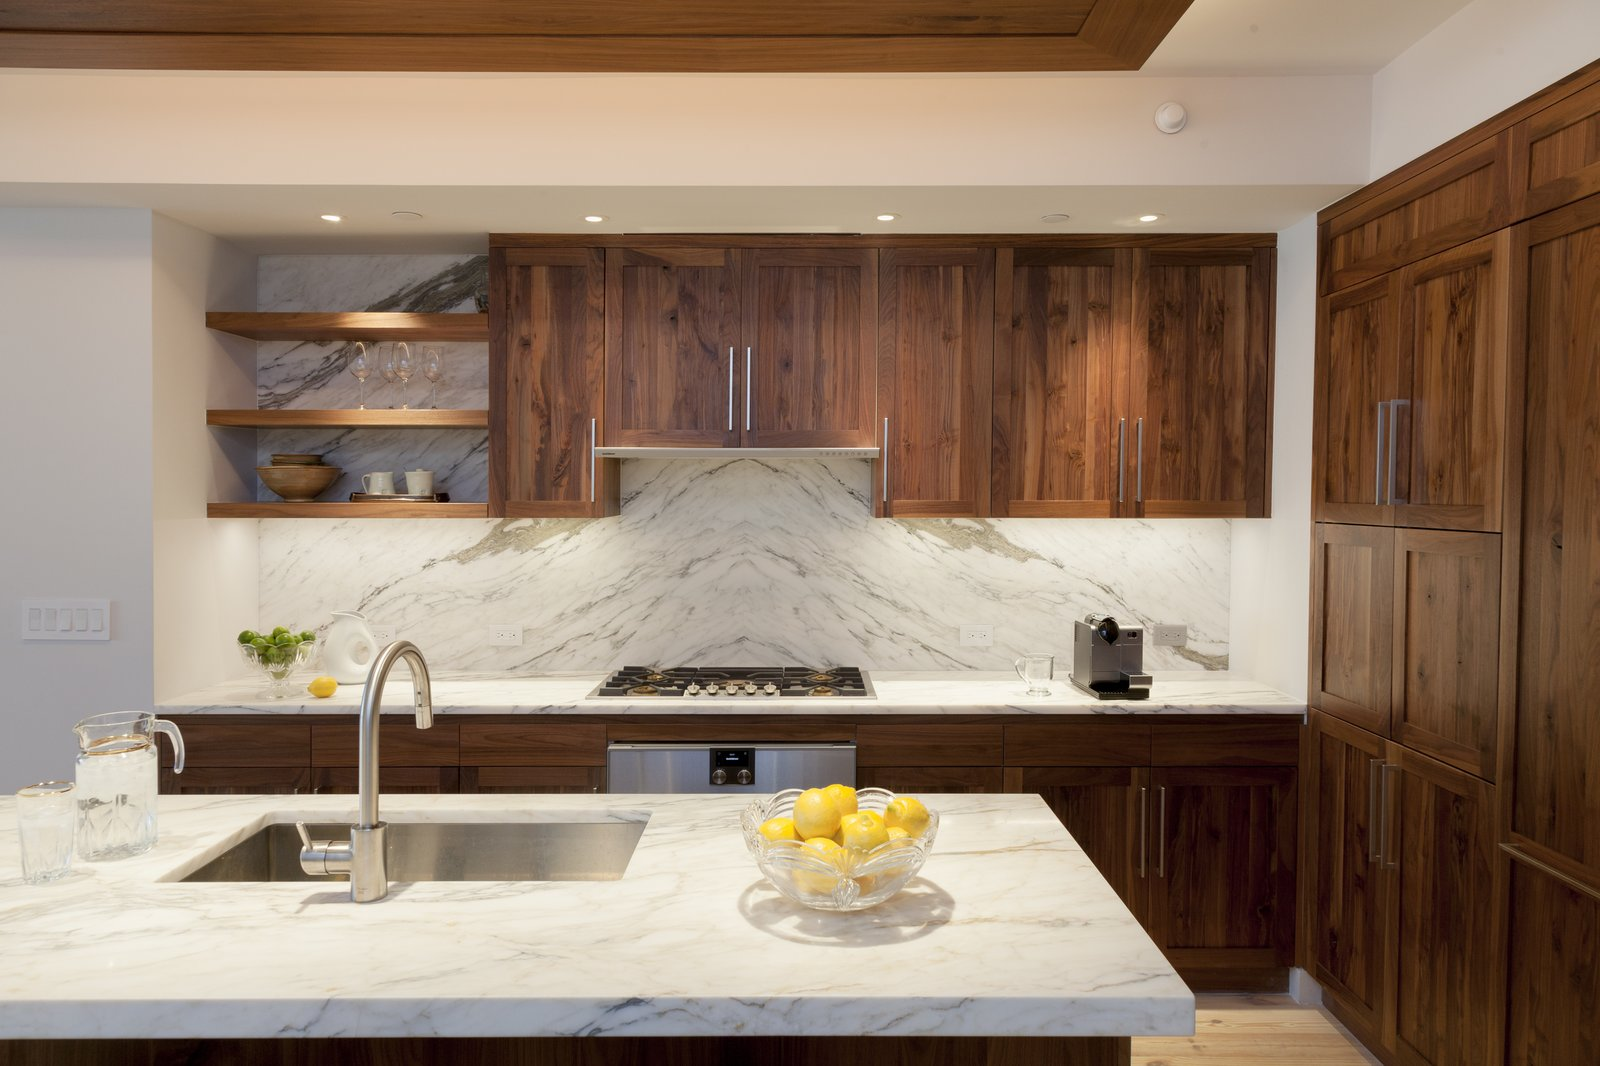 Kitchen, Marble, Wood, Stone Slab, Ceiling, Pendant, Light Hardwood, Accent, Recessed, Refrigerator, Wall Oven, Cooktops, Range, Range Hood, Wine Cooler, Ice Maker, Dishwasher, Microwave, and Undermount Walnut and book-matched  Calcutta kitchen  Best Kitchen Wall Oven Undermount Range Accent Marble Photos from Pierhouse At Brooklyn Bridge Park Condo